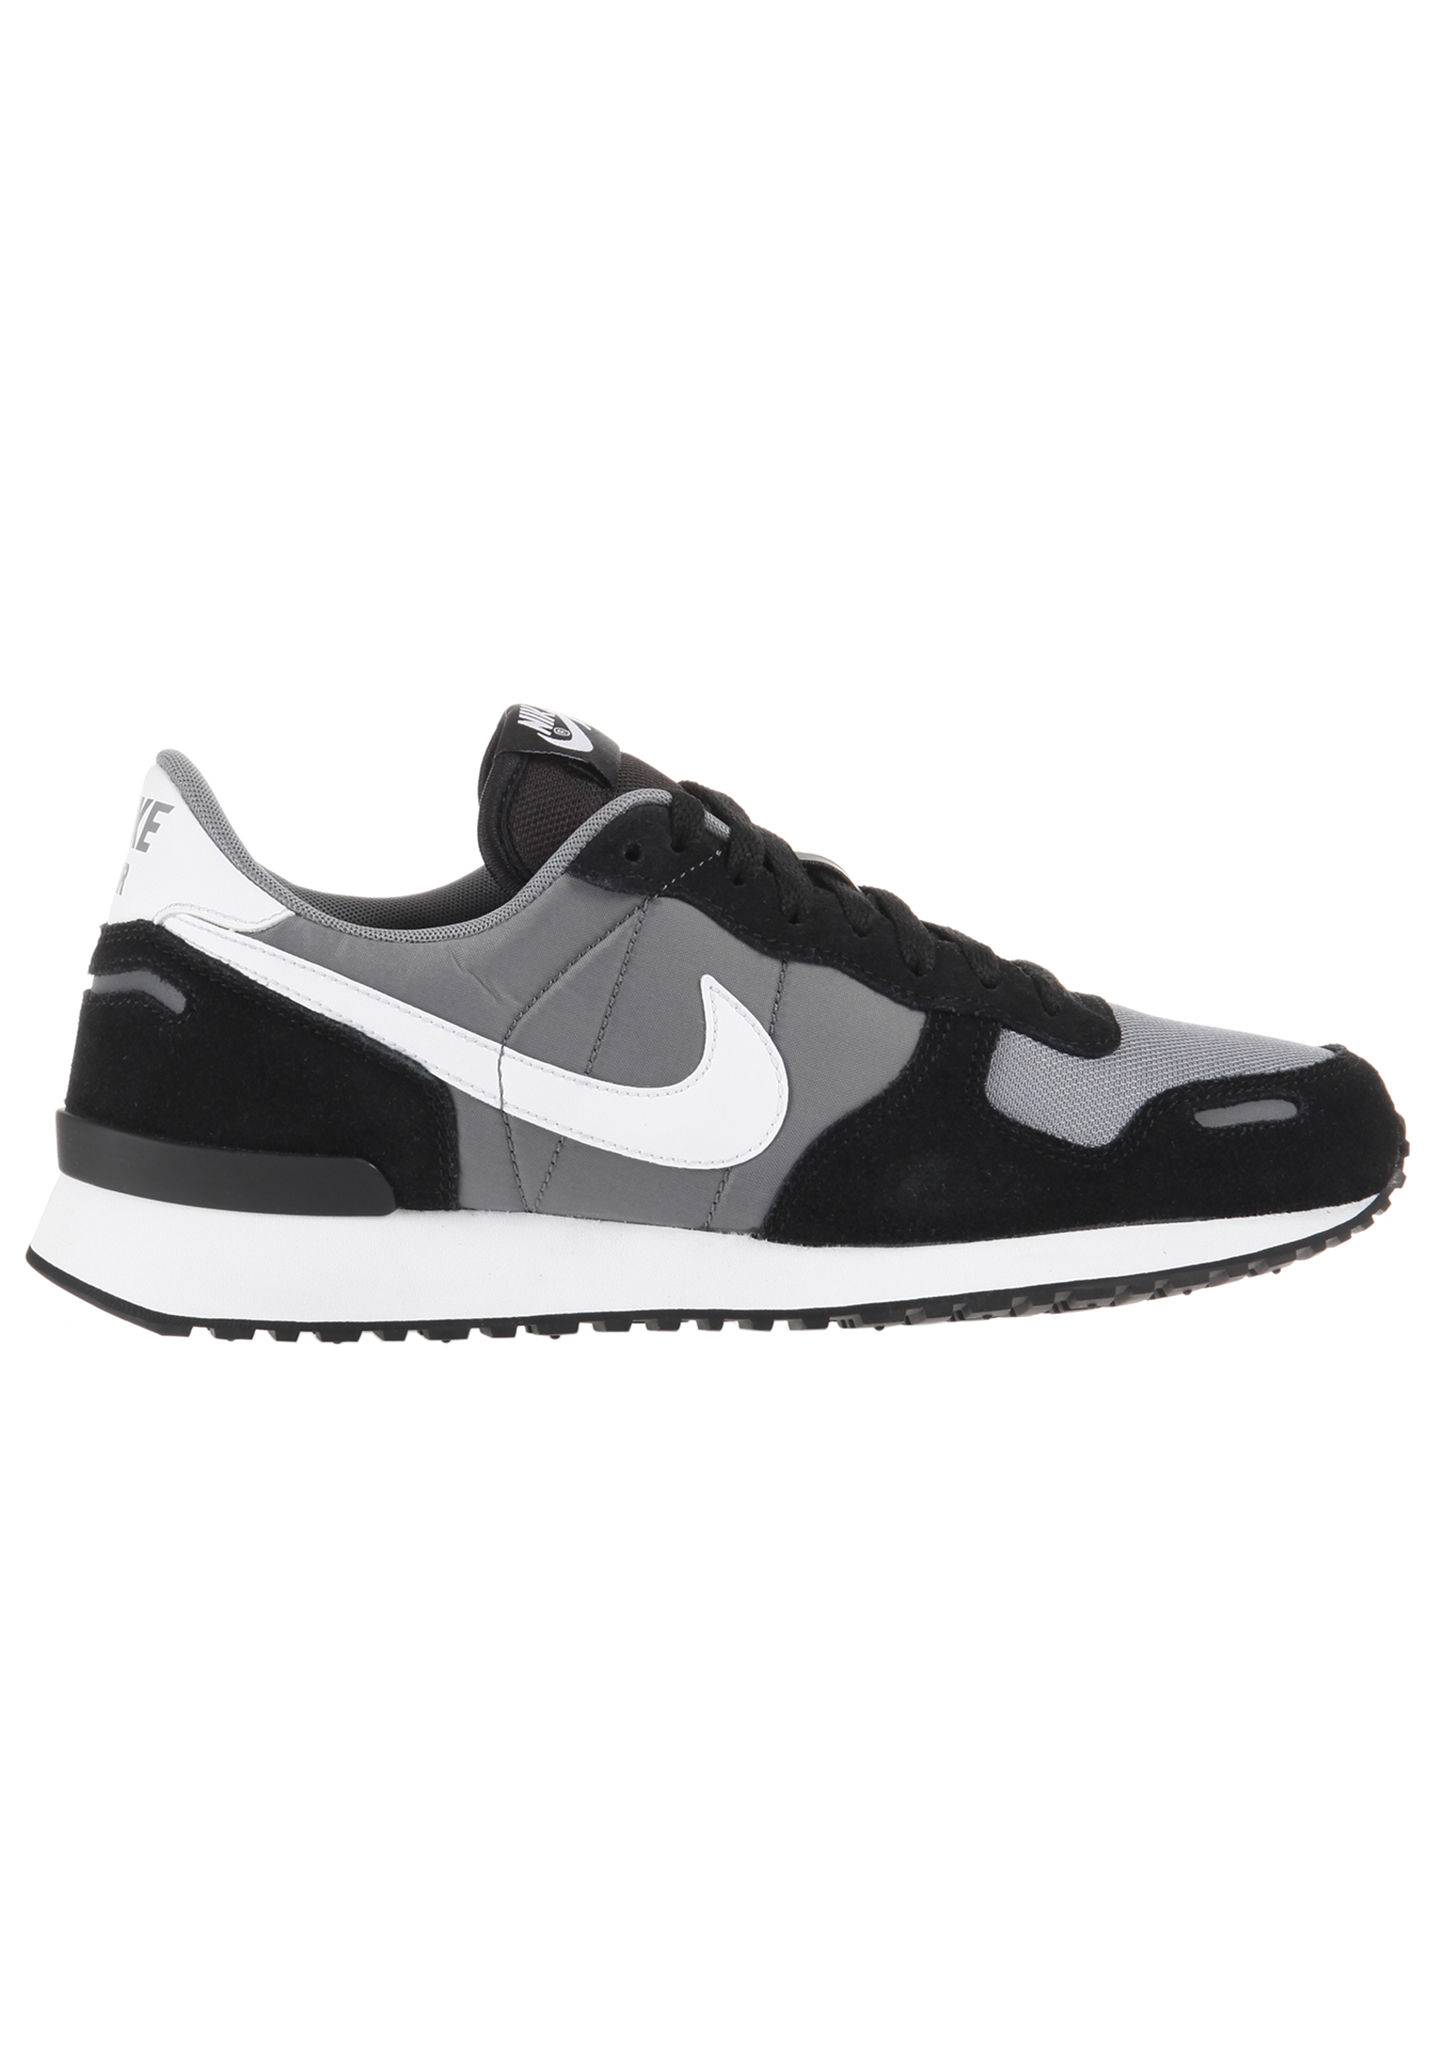 Hombres Vrtx Para Sportswear Planet Zapatillas Nike Air Gris aSwX8q 9b6aac03c97be